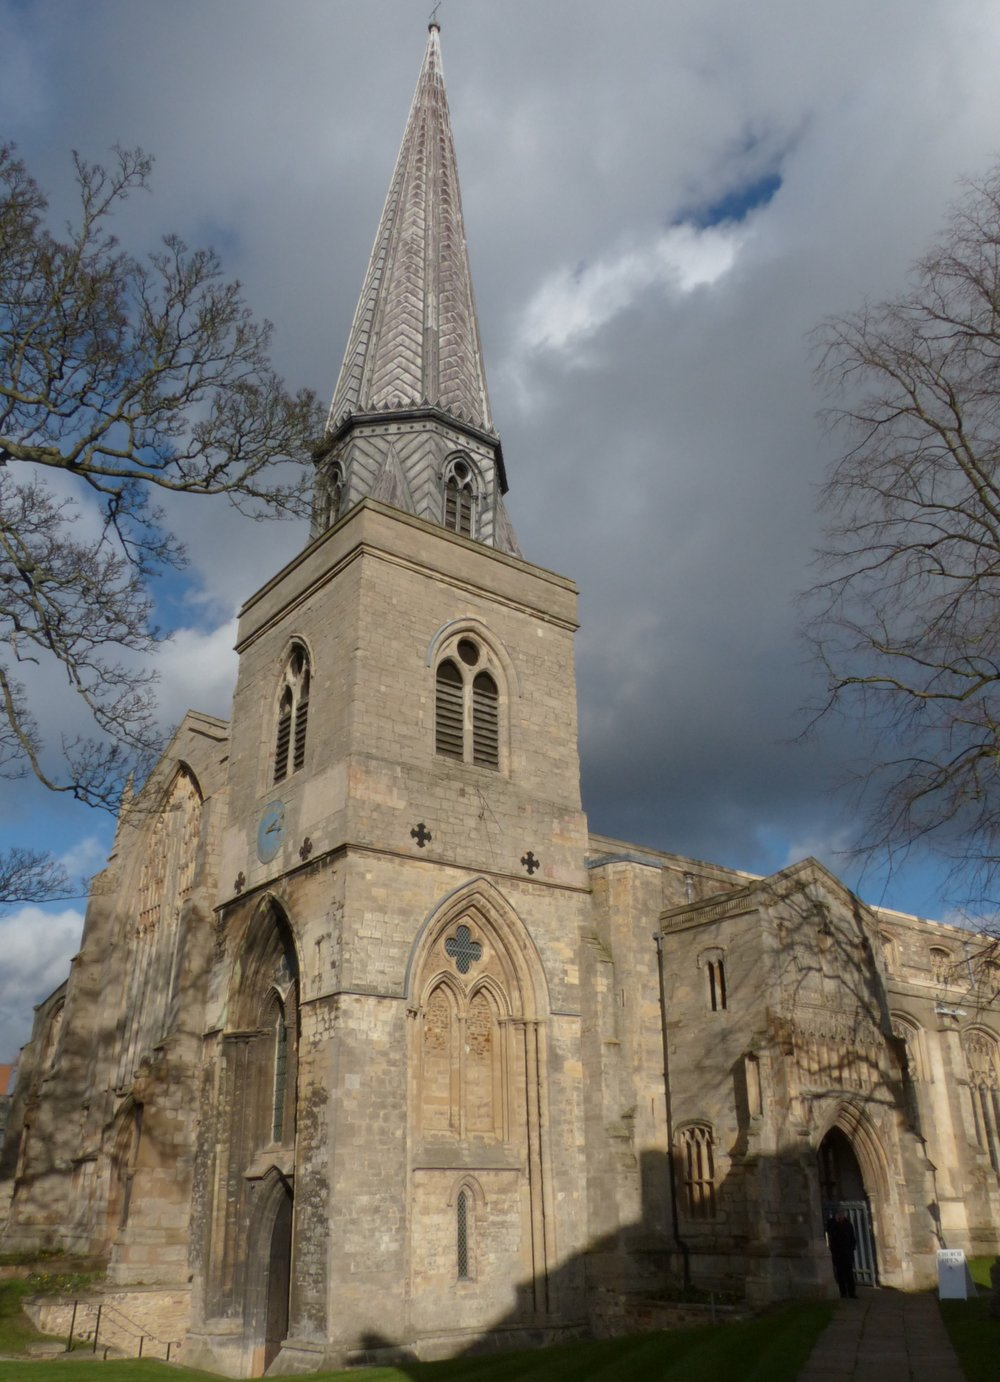 St Nicholas Chapel, a building of outstanding design for its late 14th-early 15th century date & of European importance